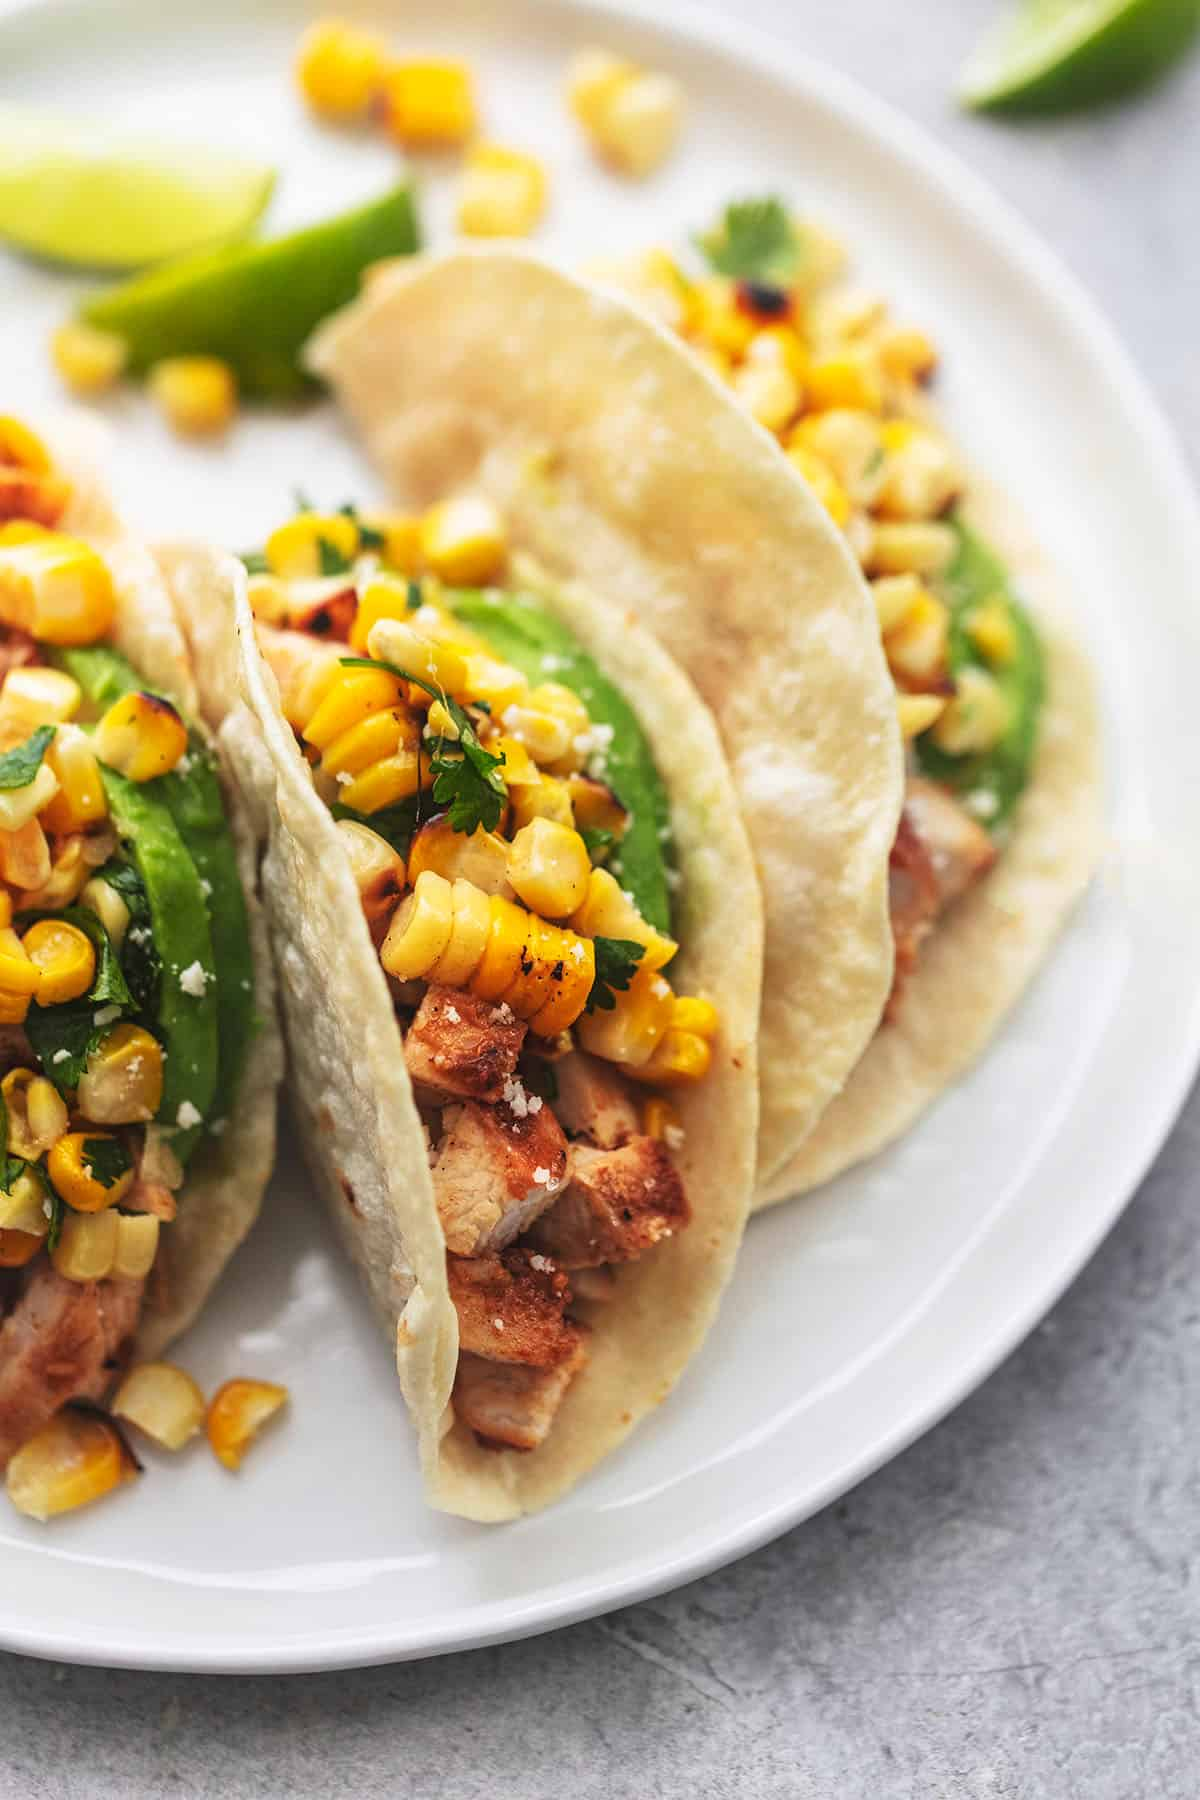 three tortillas filled with chicken, avocado and corn salsa on white plate